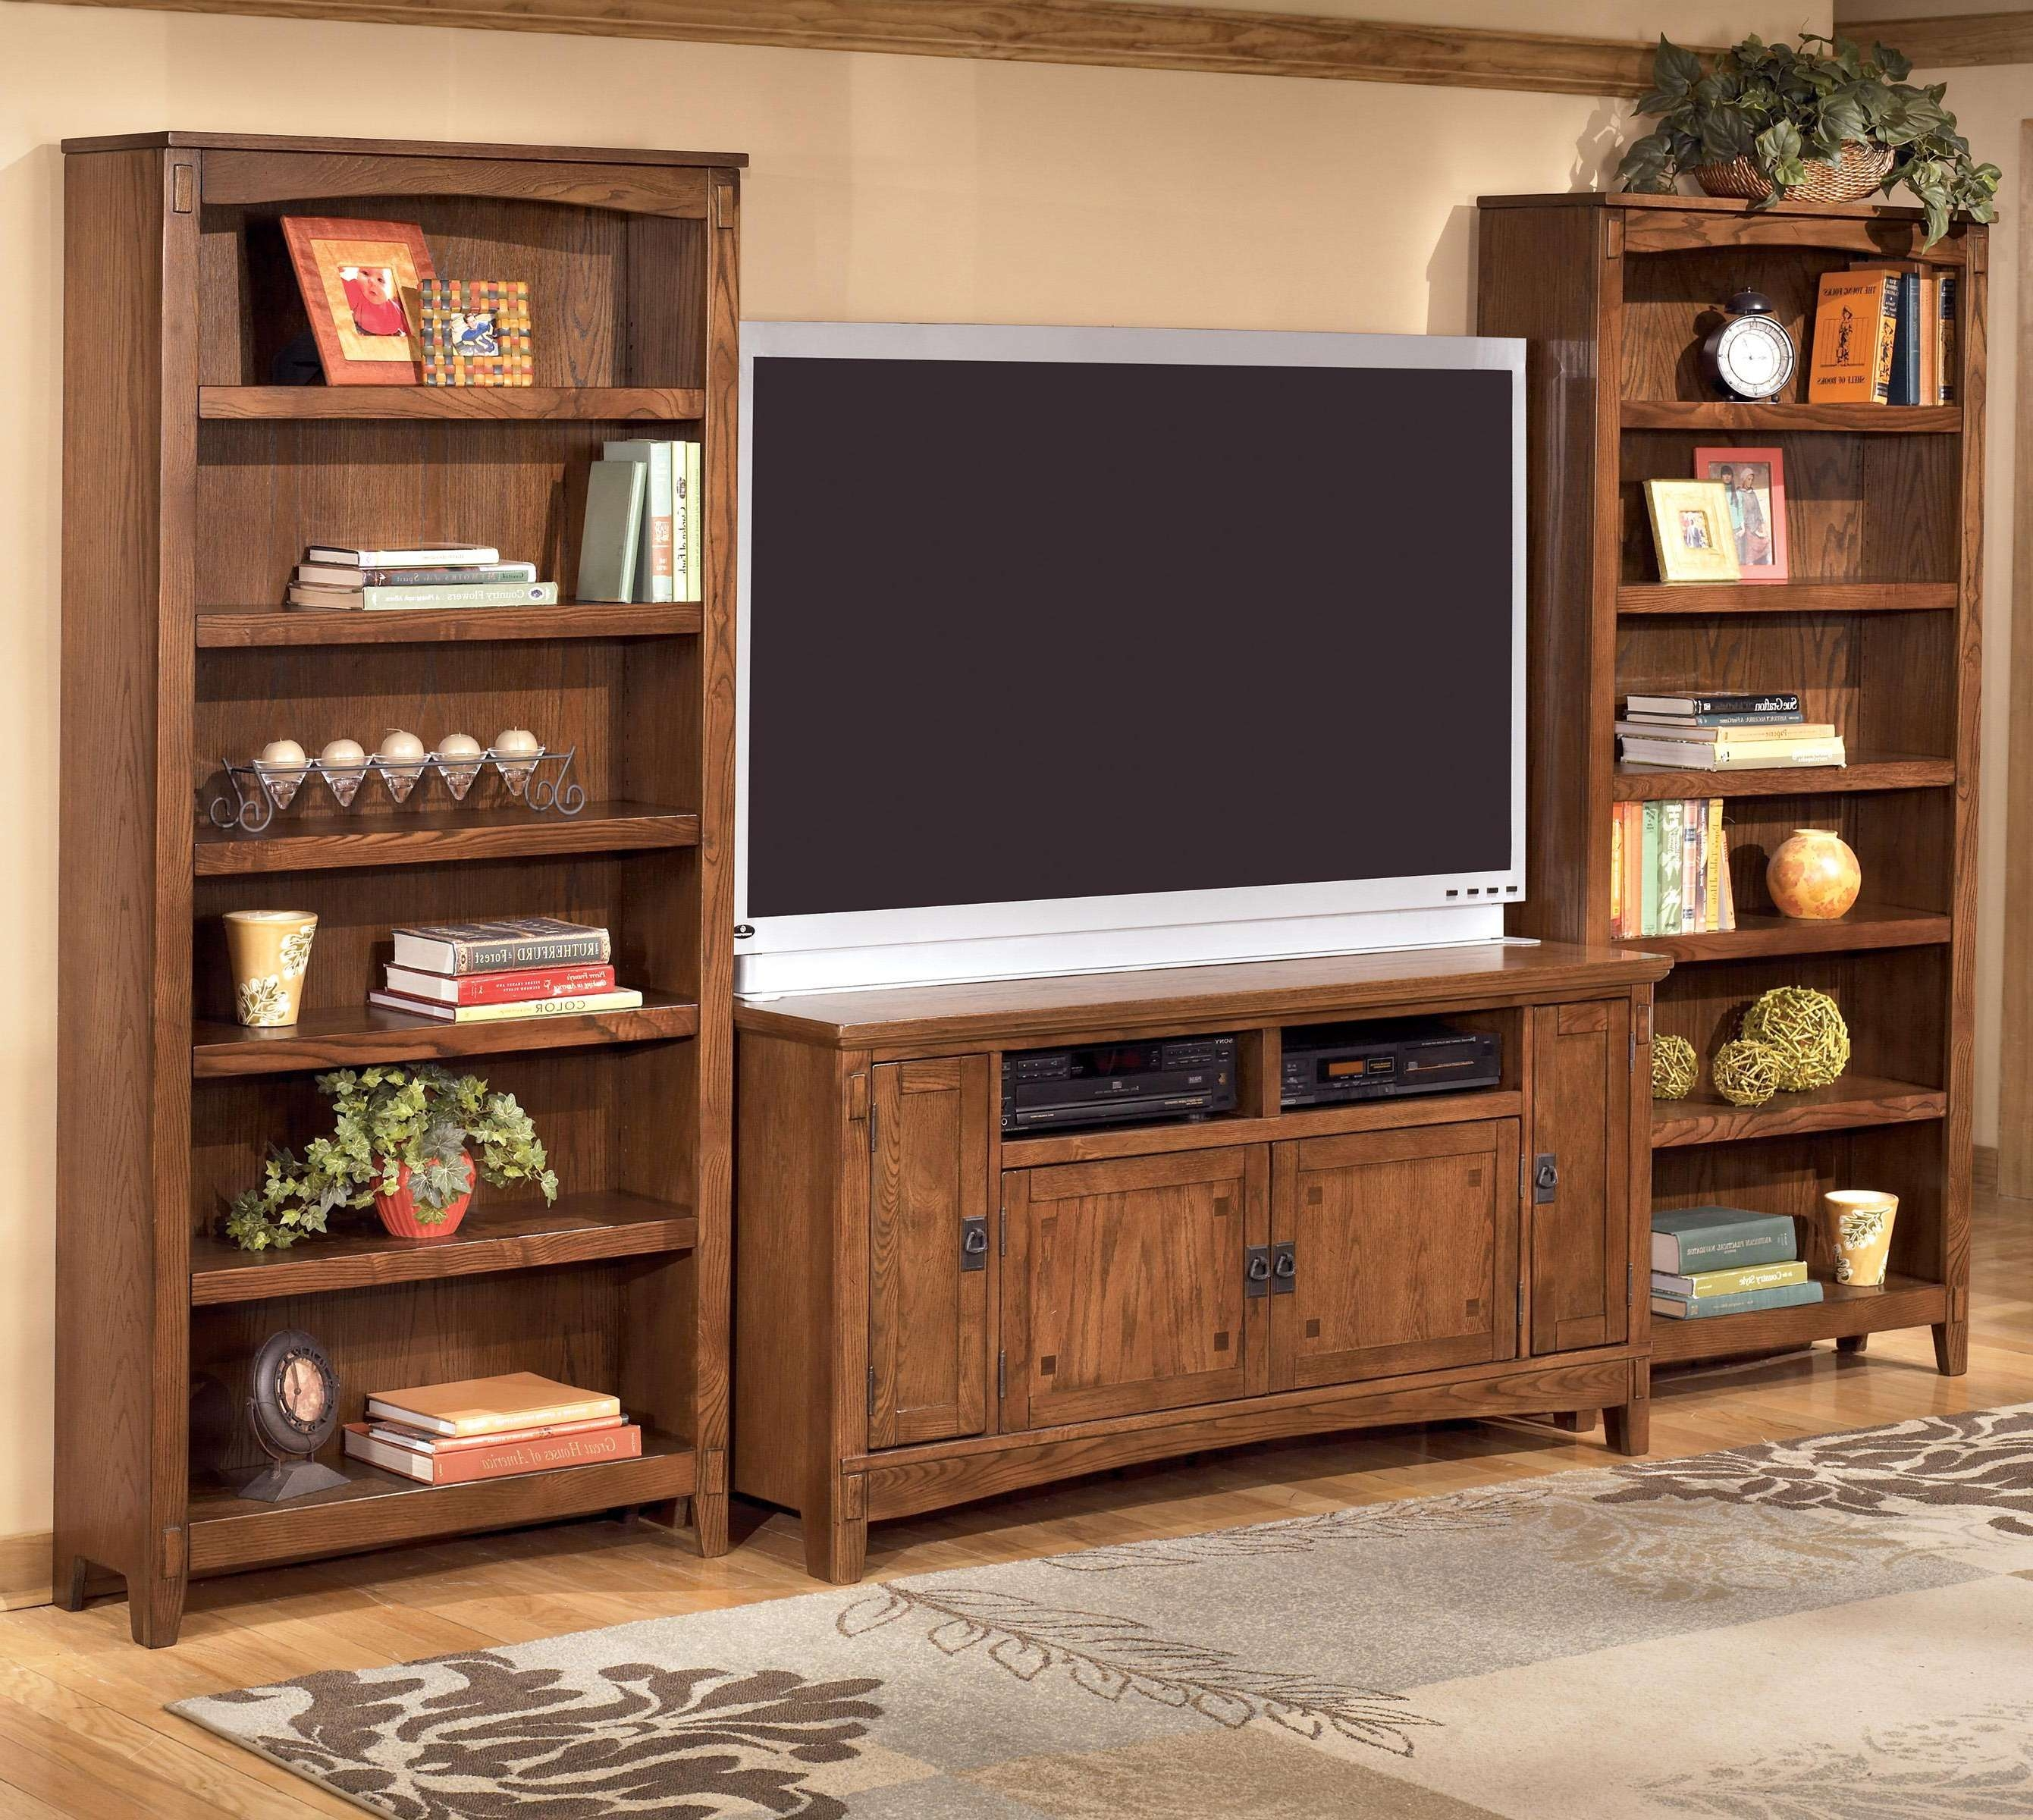 Bedroom Design : Awesome 40 Inch Tv Stand Simple Tv Stand Rustic Inside Rustic 60 Inch Tv Stands (View 1 of 15)